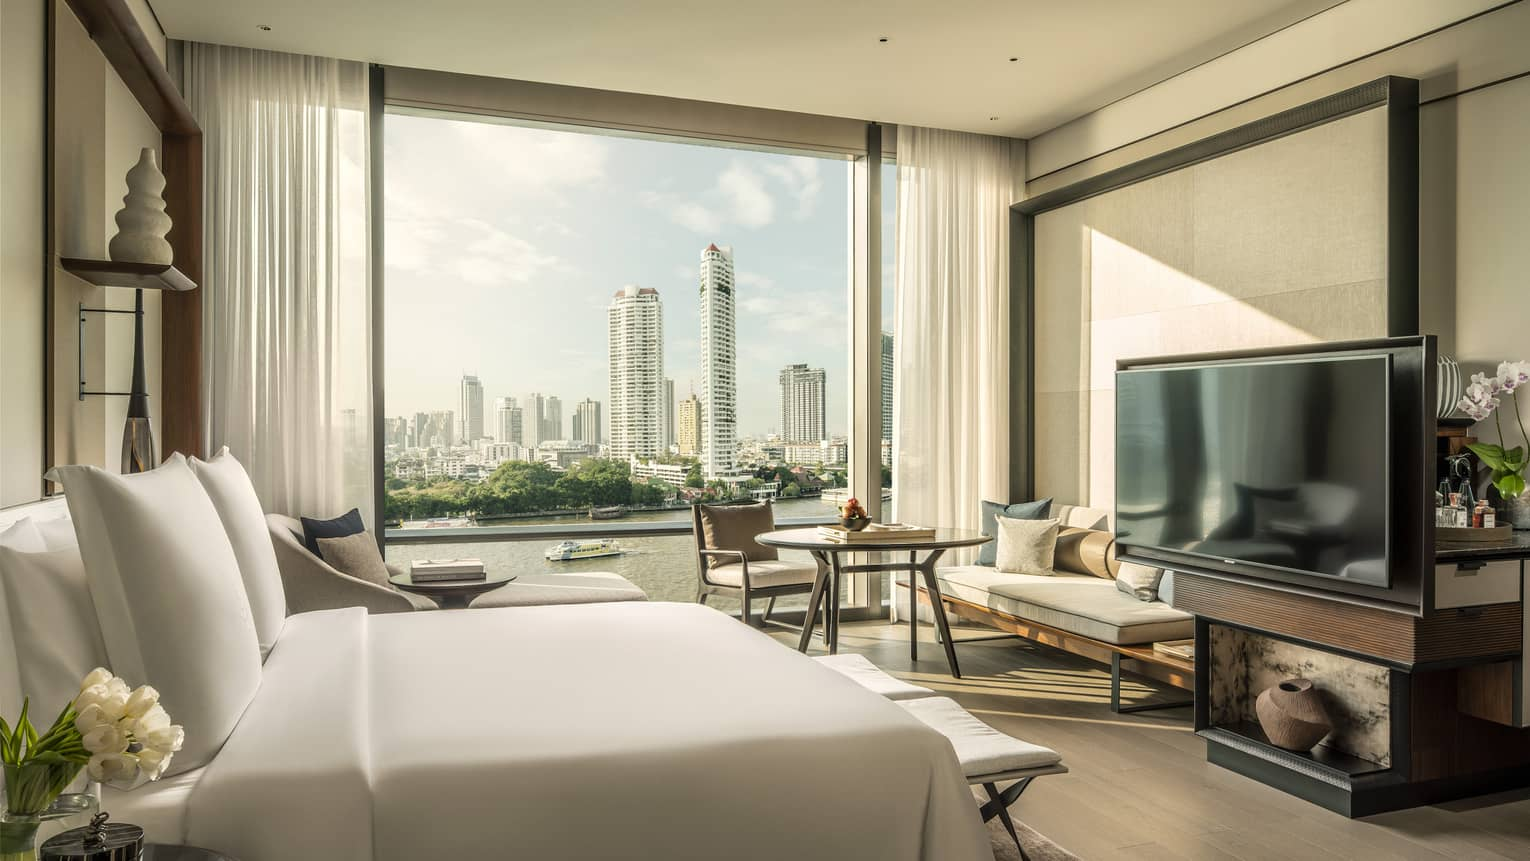 Hotel room with white king bed, view of Chao Phraya River, TV